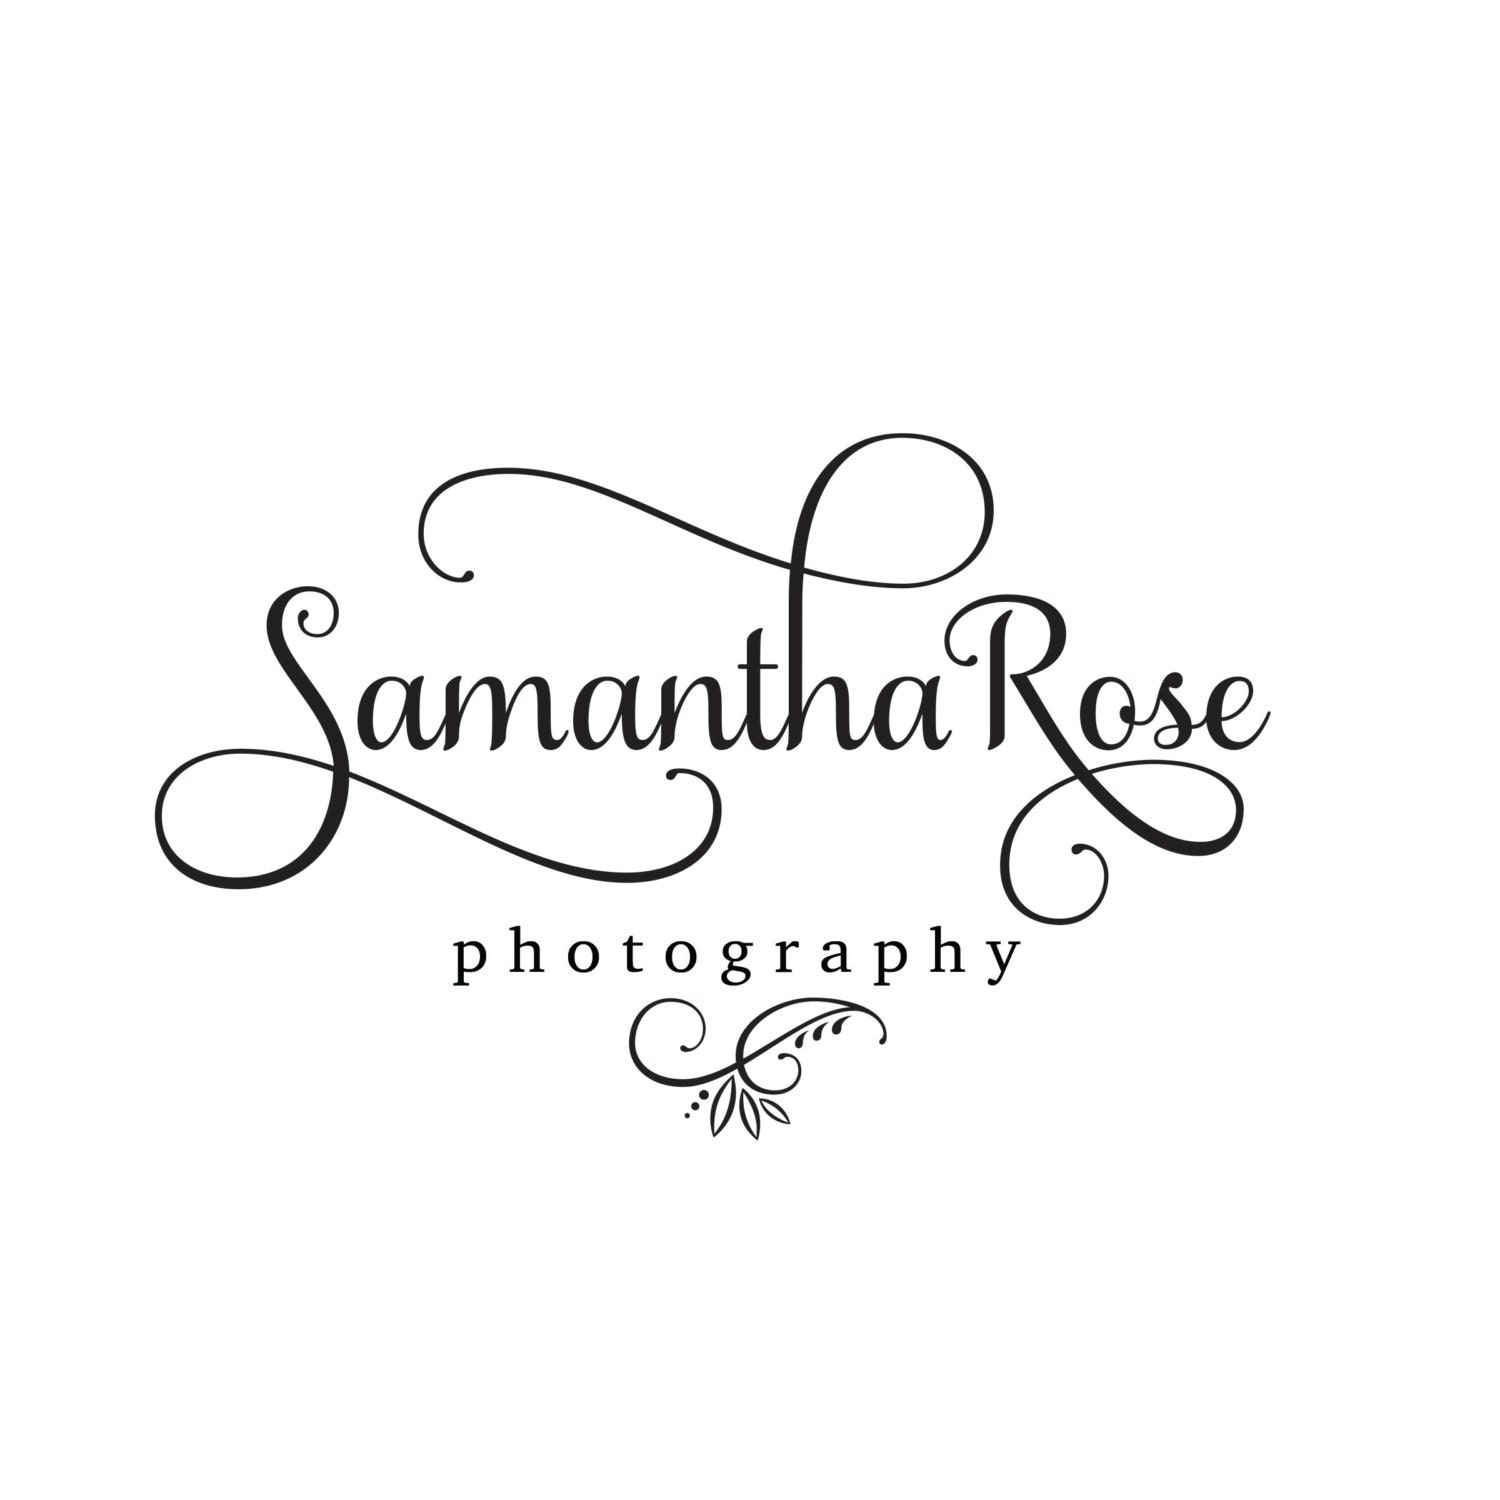 Premade logo calligraphy logo small boutique logo sleek Calligraphy logo